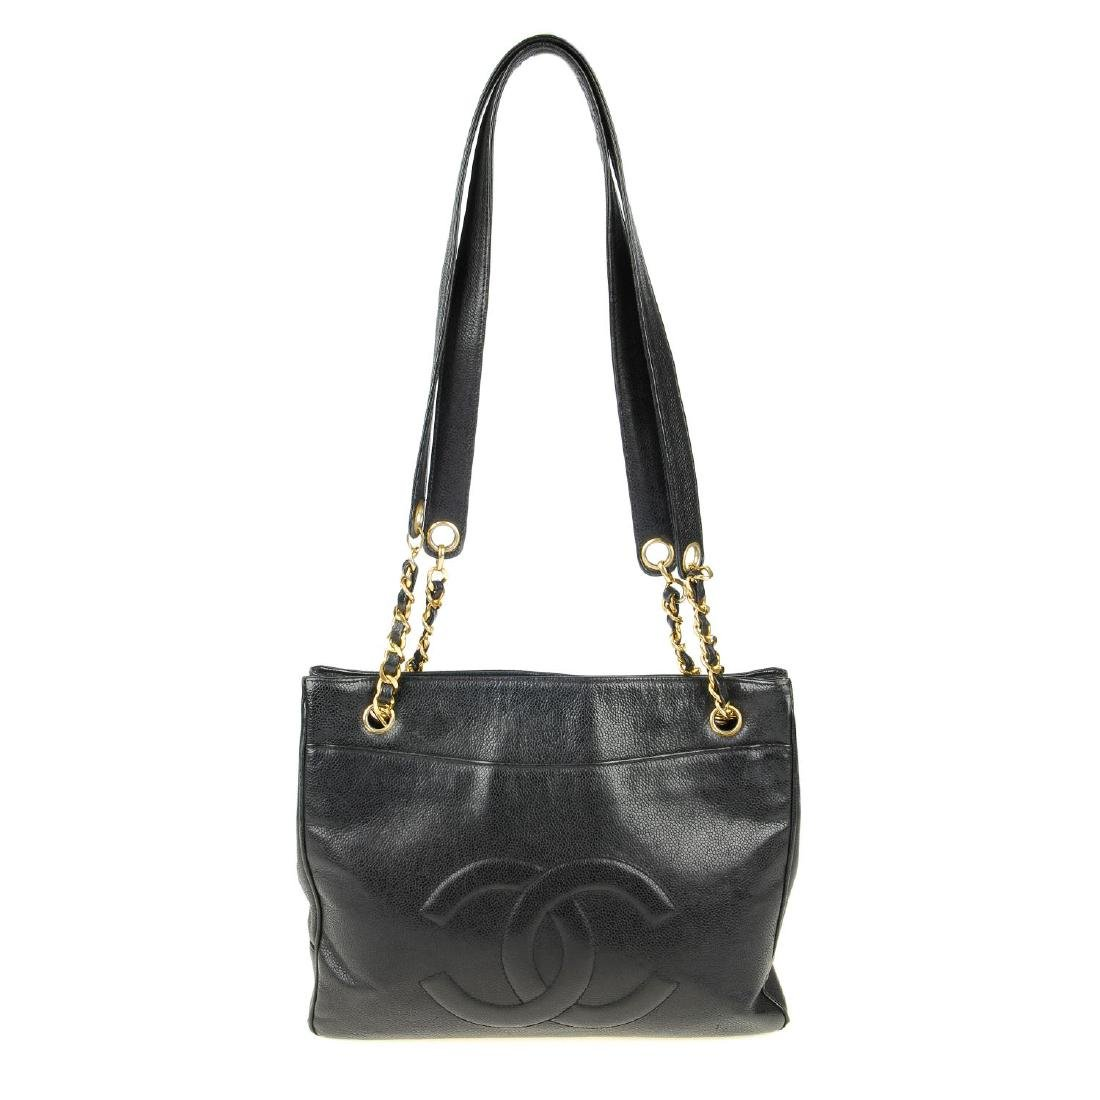 CHANEL - a Caviar leather handbag. The square tote with